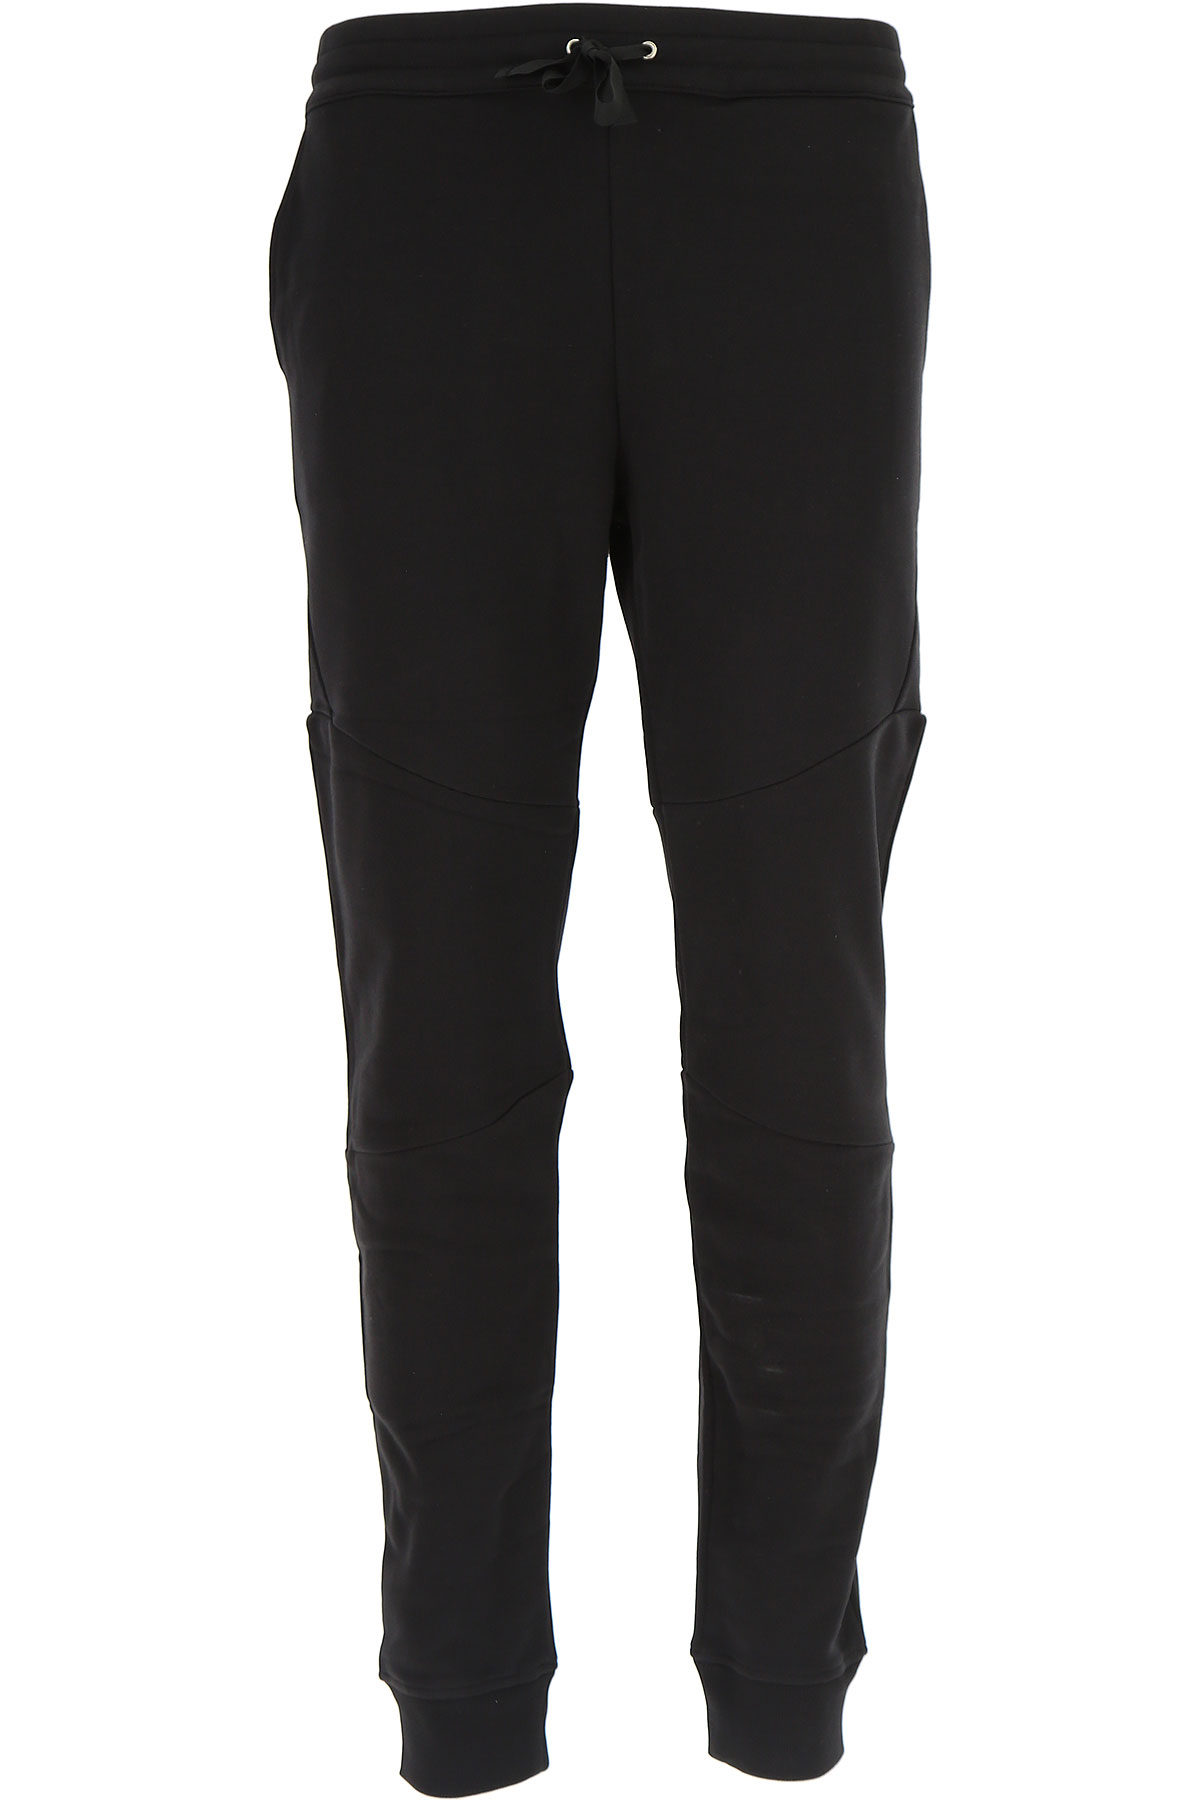 Versace Pants for Men On Sale, Black, Cotton, 2017, L XL